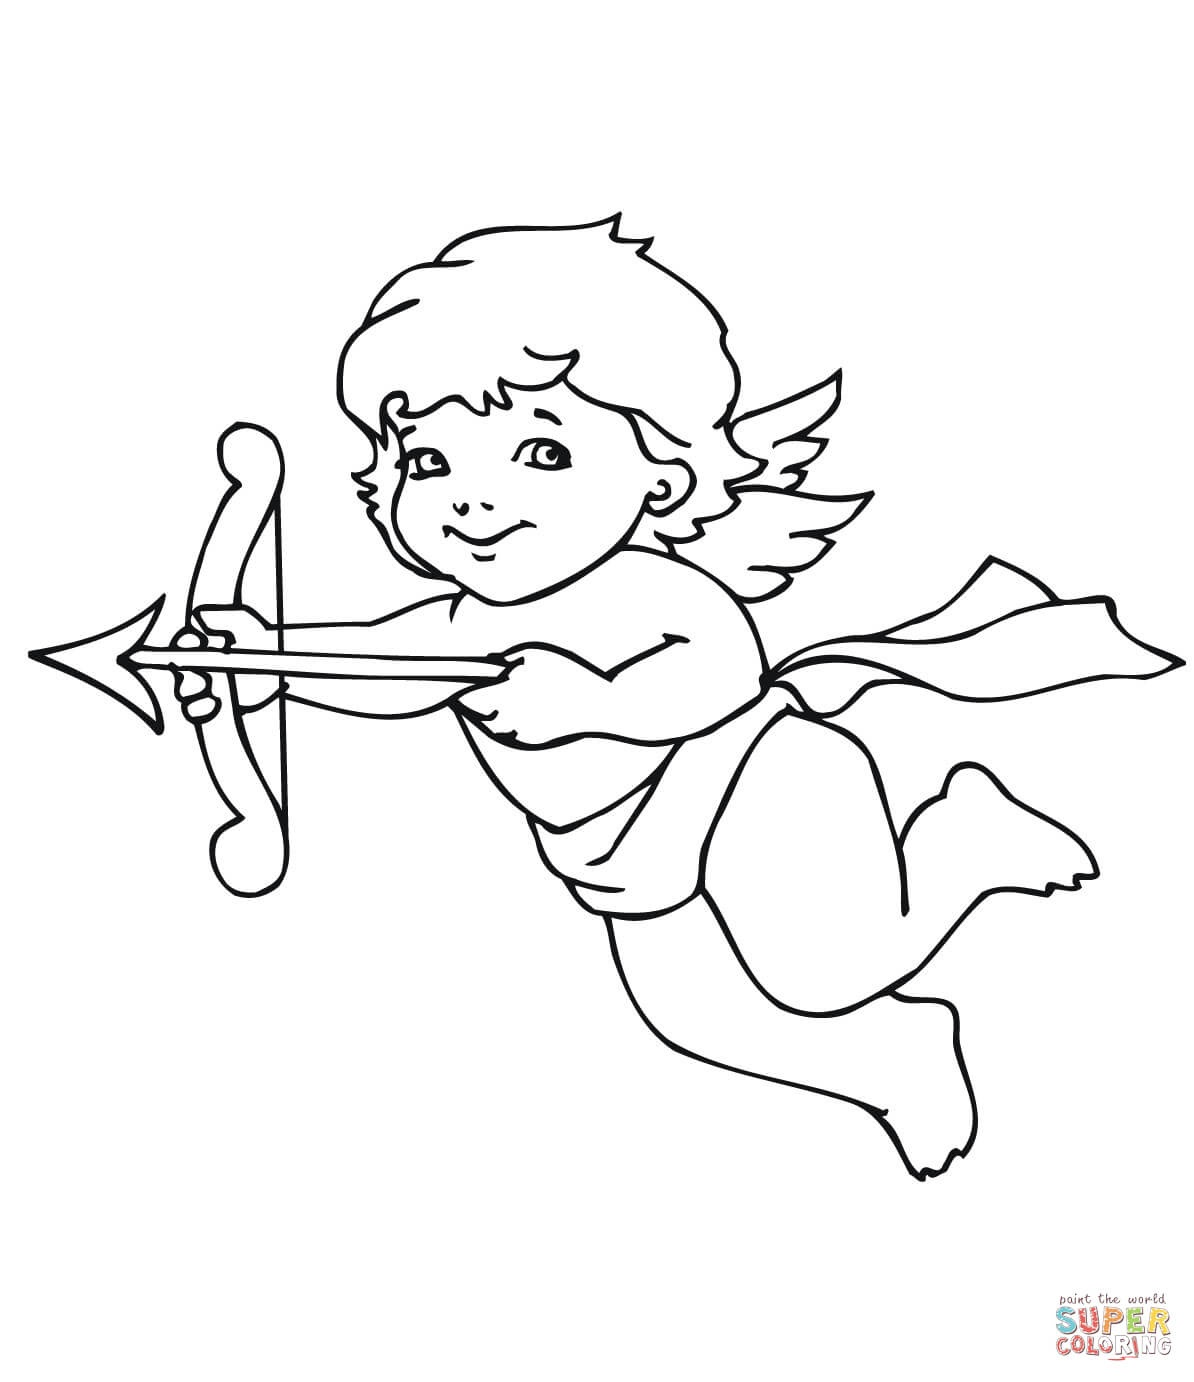 Cute Valentine Cupid Coloring Page | Free Printable Coloring Pages - Free Printable Pictures Of Cupid